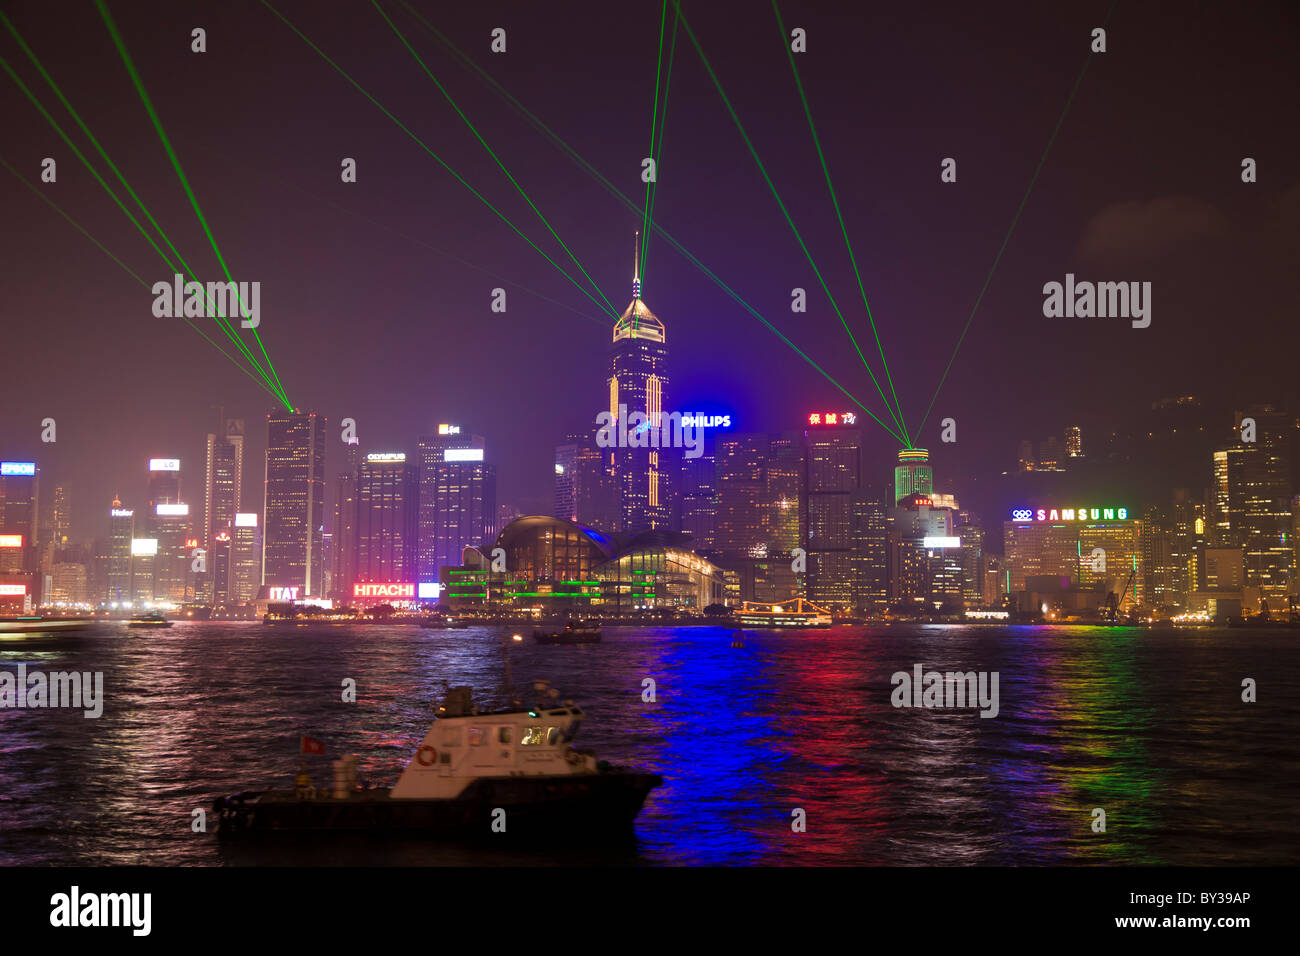 Laser light show Hong Kong Island at night viewed across Victoria Harbour from Kowloon. JMH4152 - Stock Image